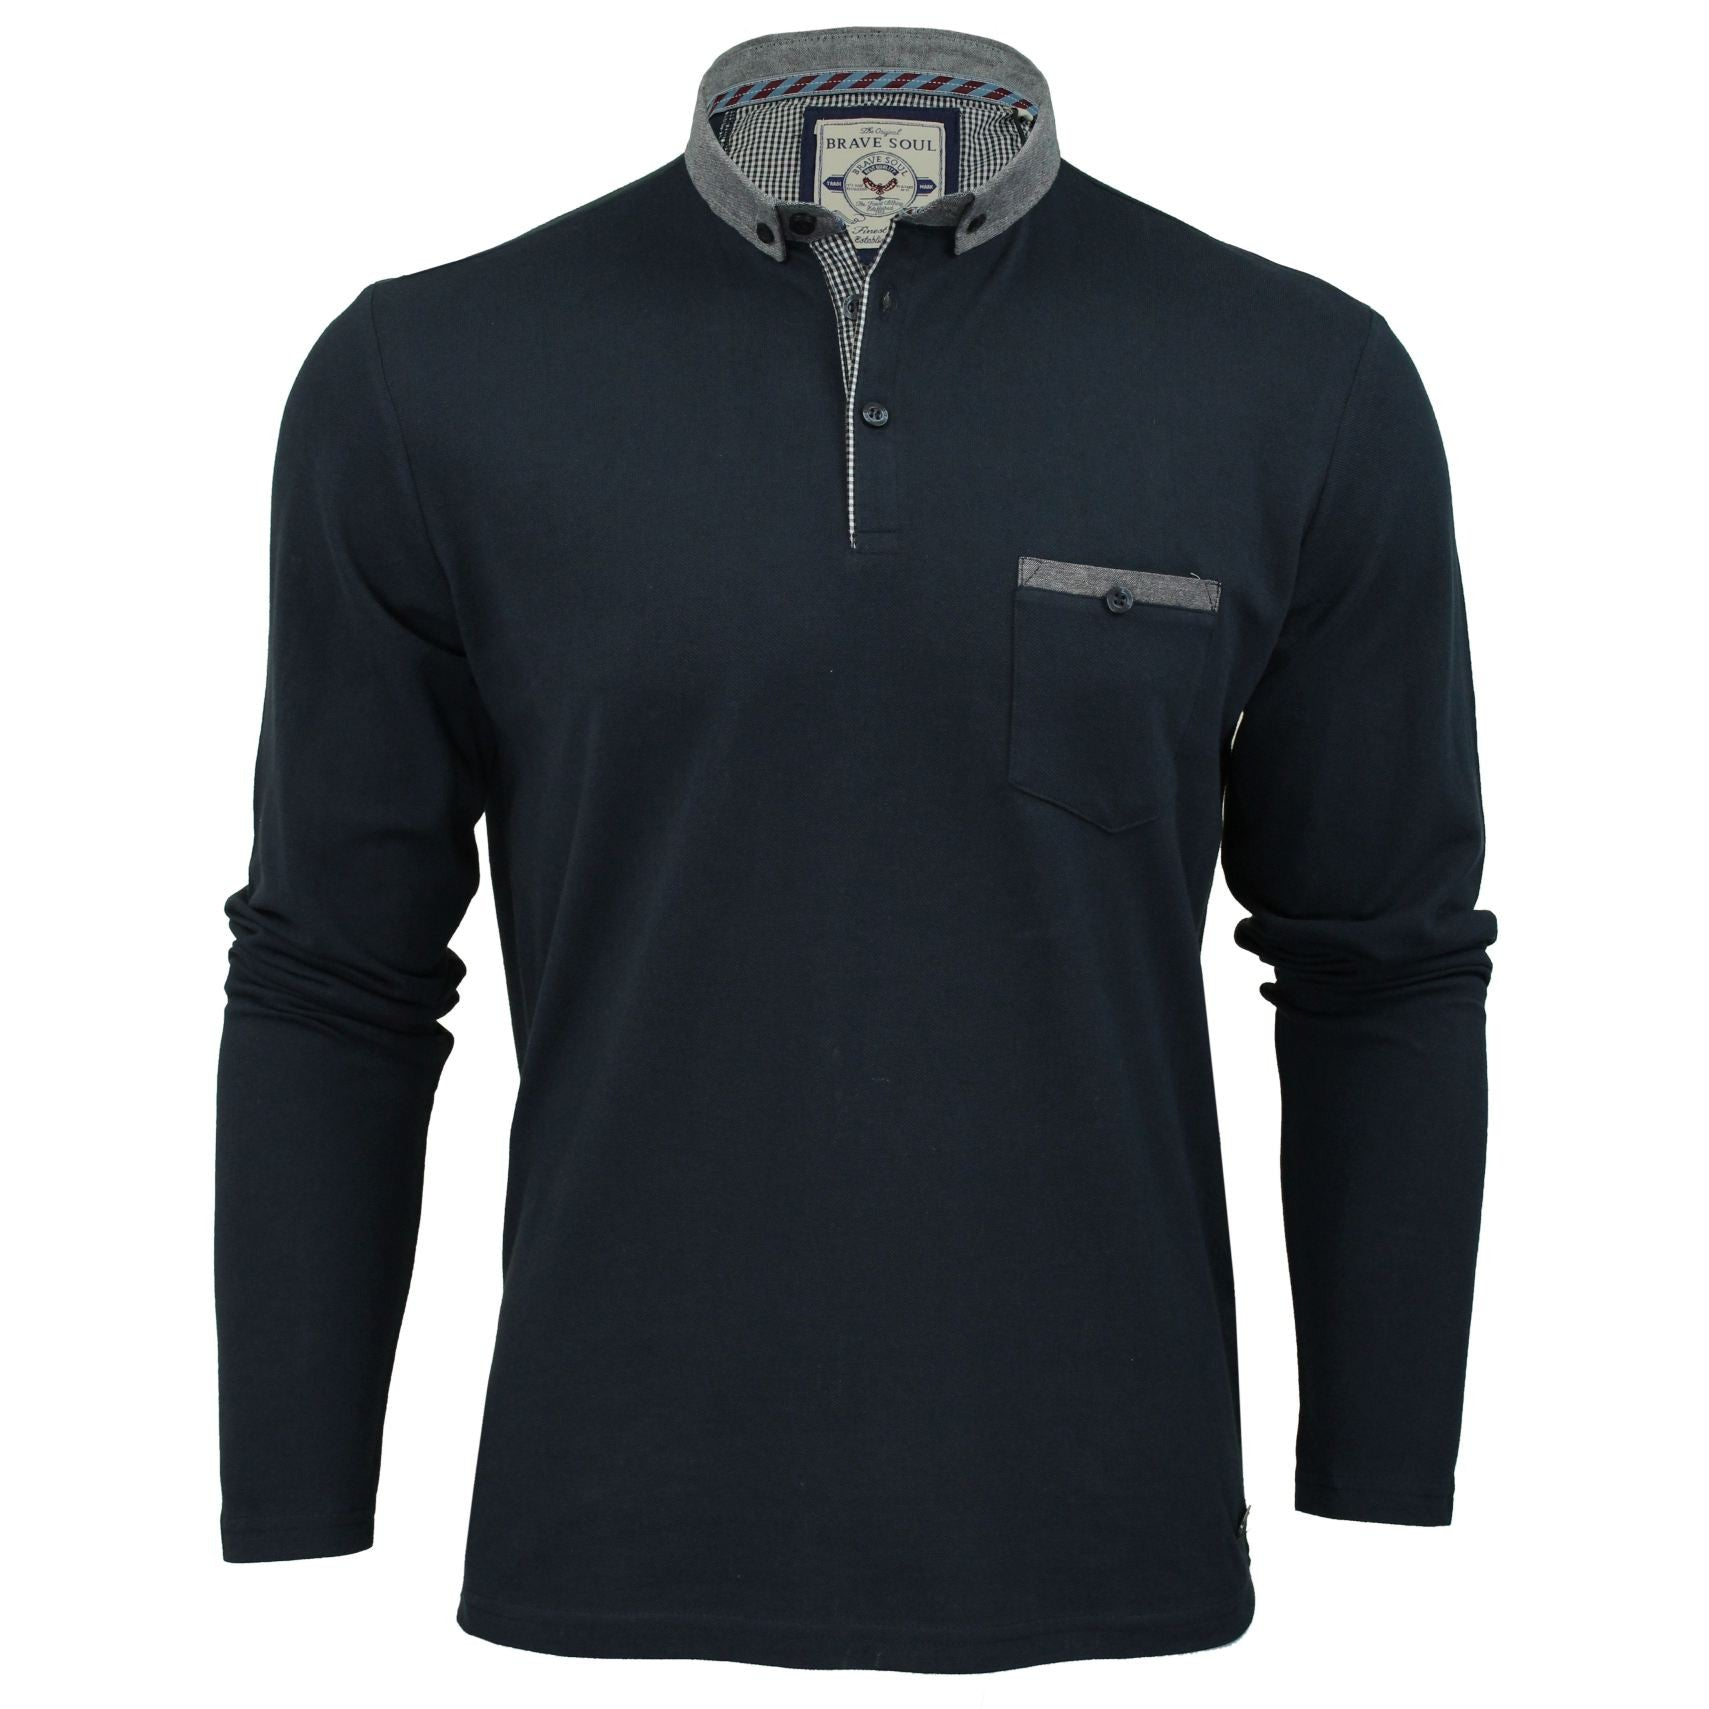 Mens Polo Shirt by Brave Soul 'Hera' Long Sleeved-Main Image